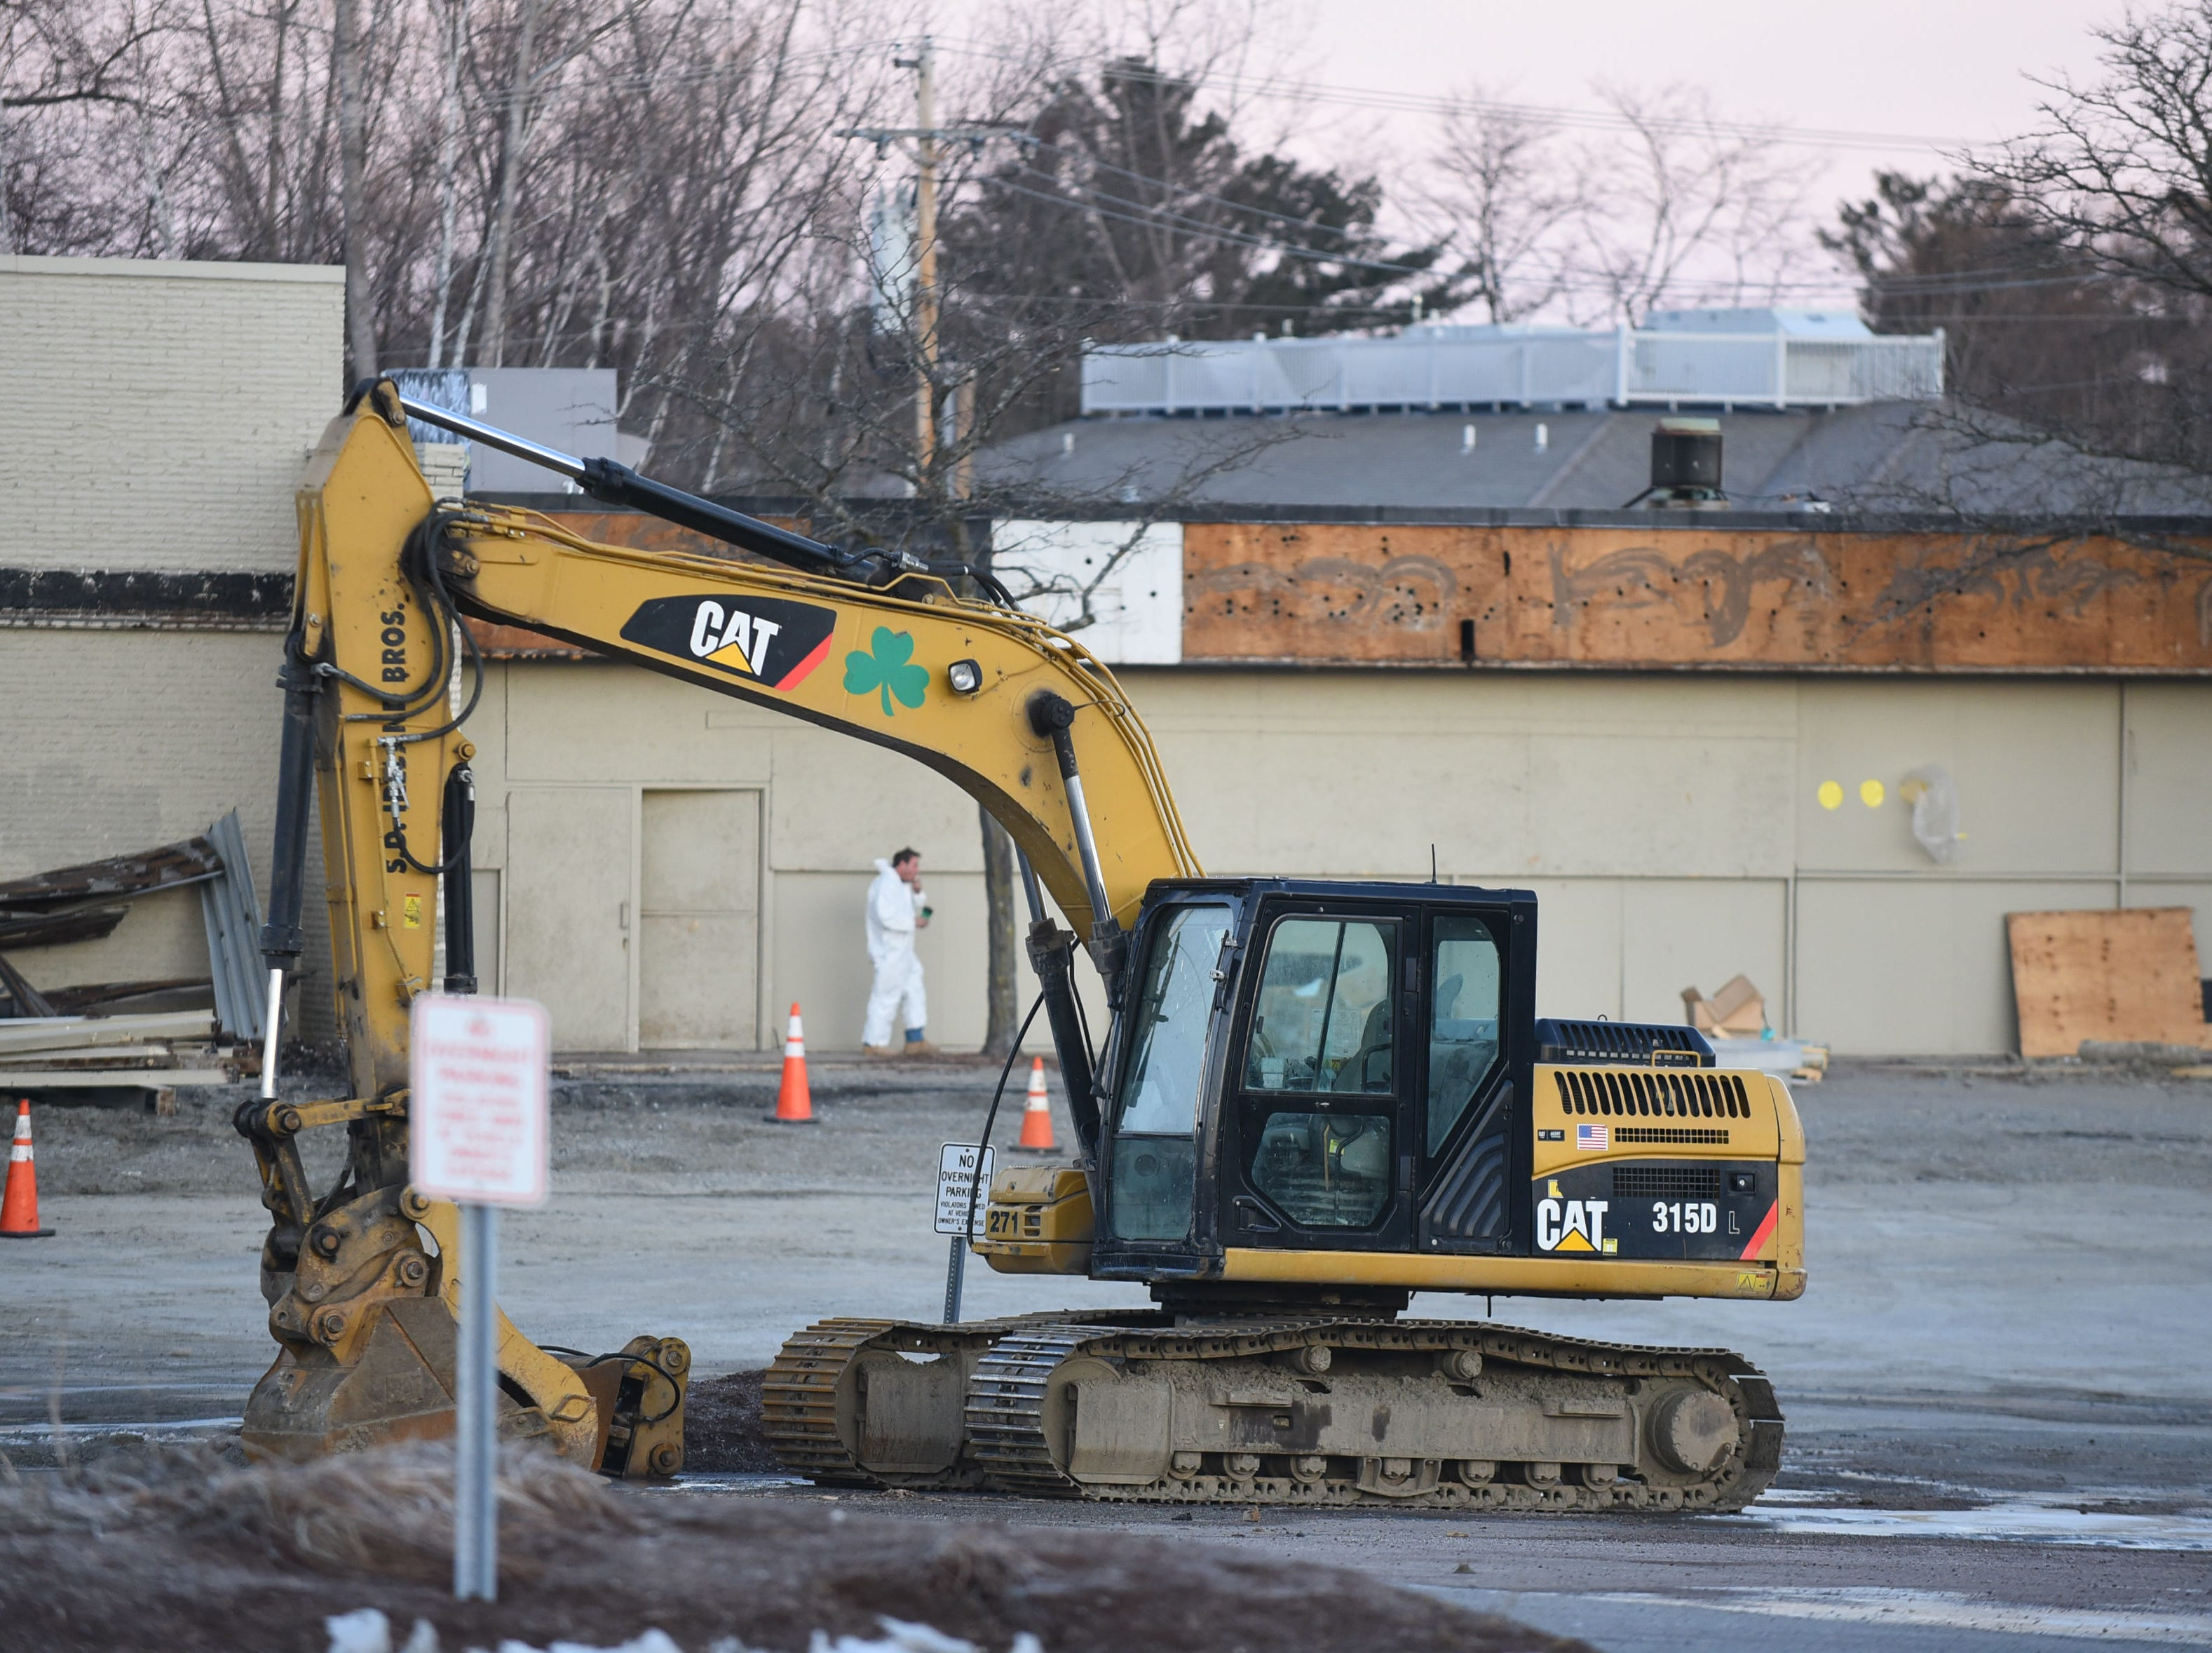 Equipment stands ready in the parking lot of the former Kmart in South Burlington  on the morning of Wednesday, March 20, 2019. Work has begun at the empty shopping center to make way for a new Hannaford supermarket.